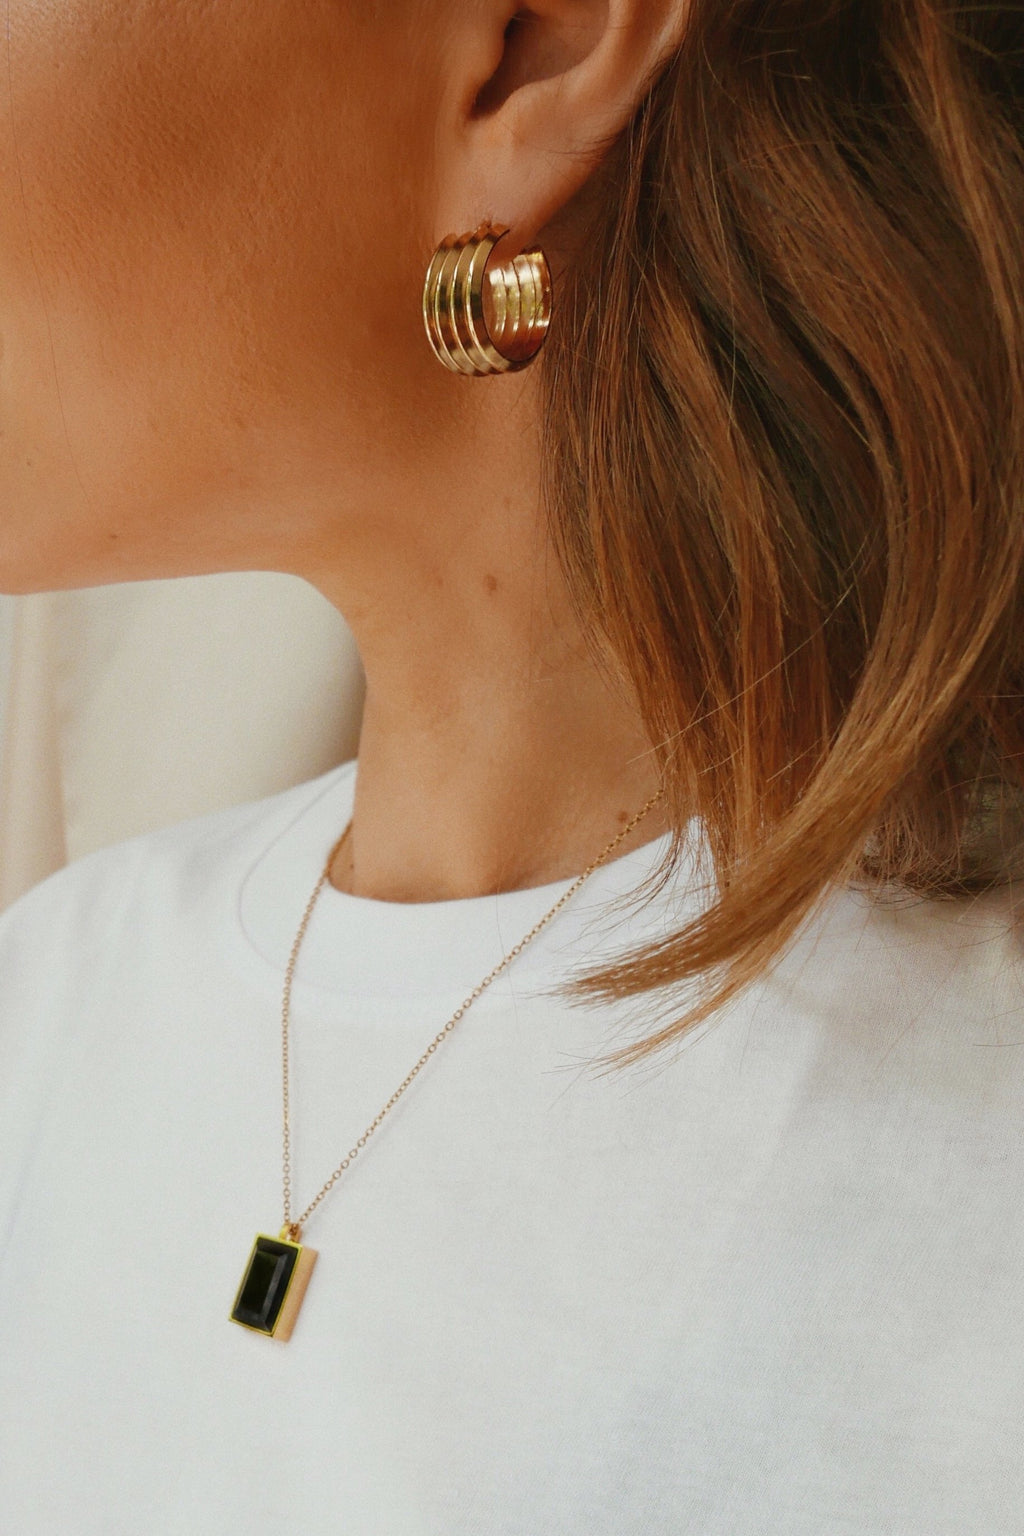 Giglio Hoop Earrings - Boutique Minimaliste